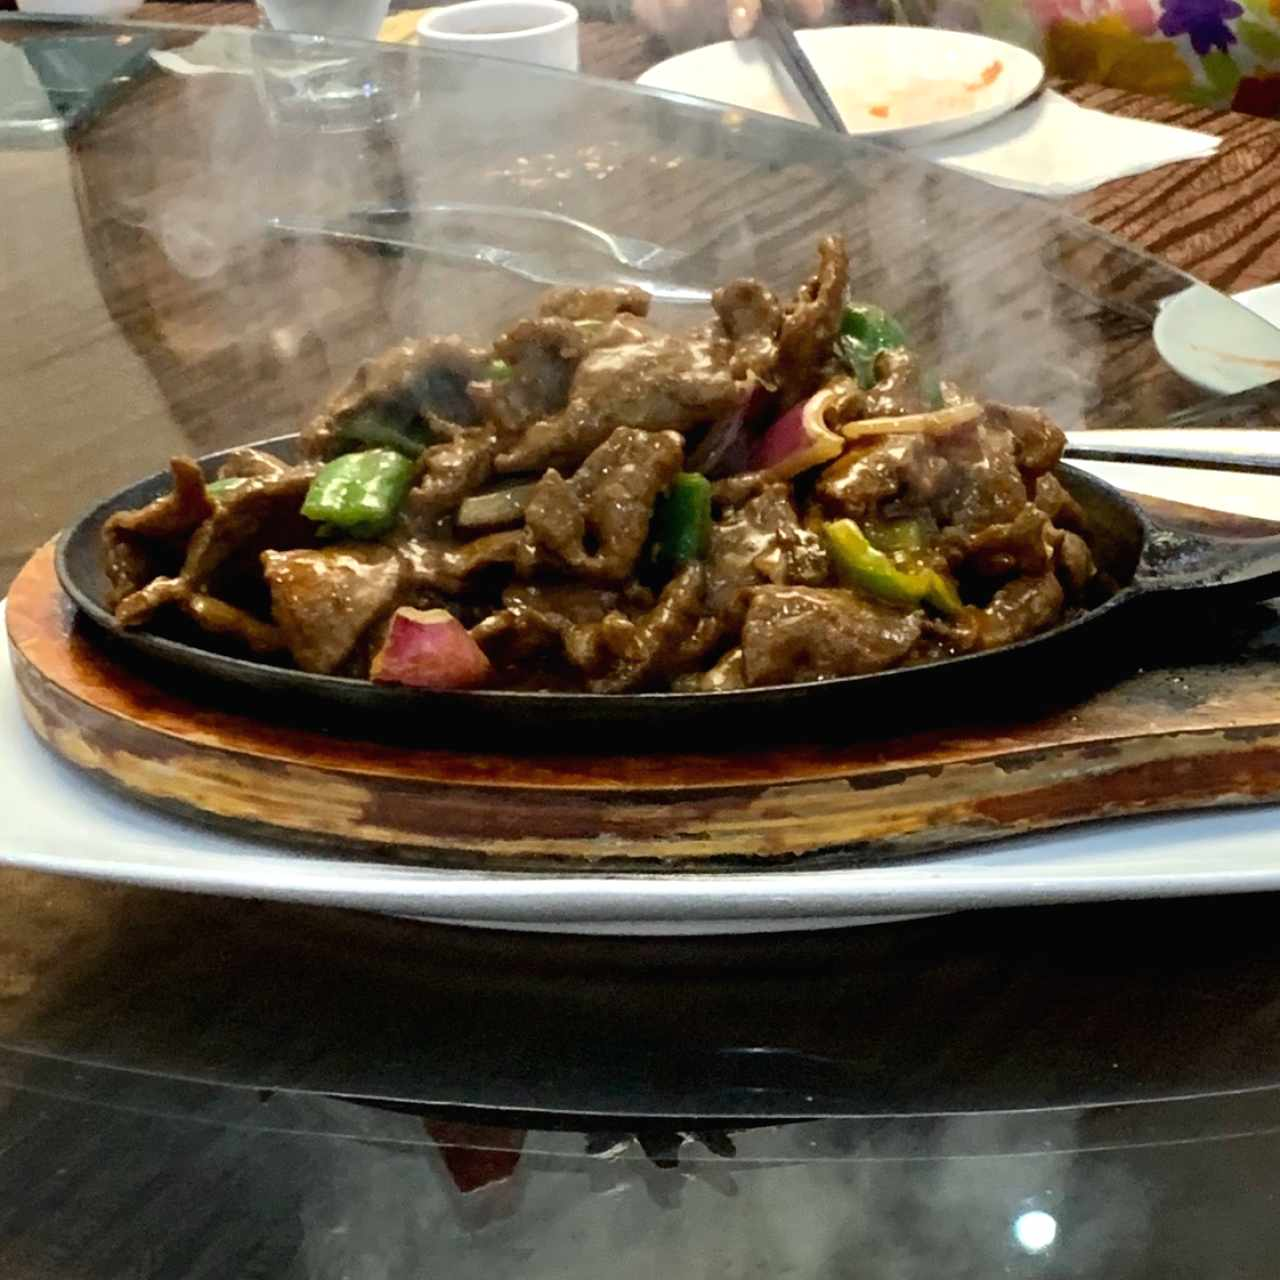 Sizzling Steak